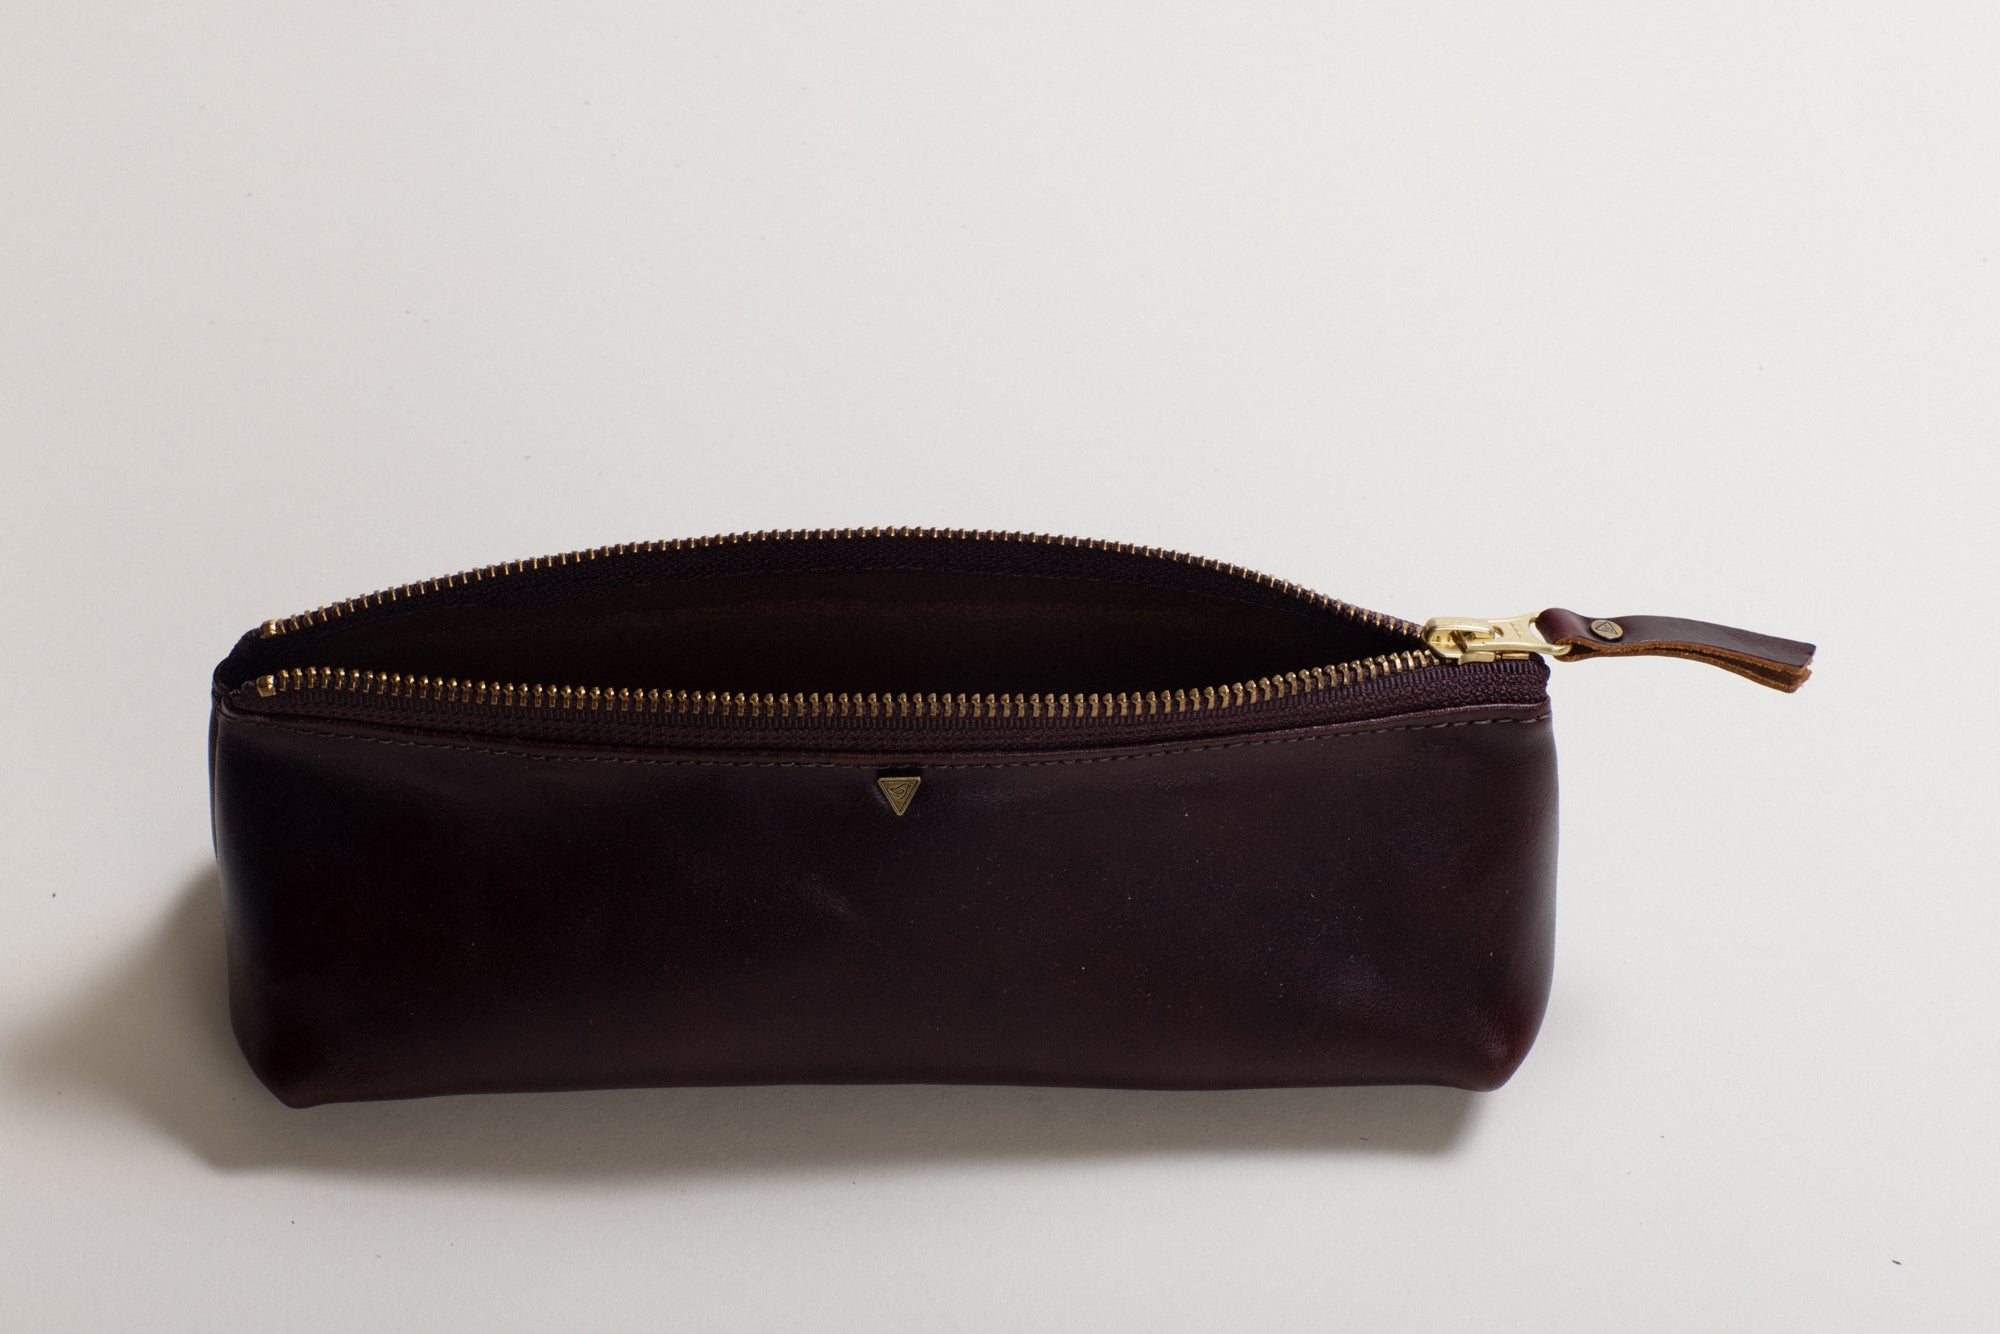 The Atelier Leather in Mahogany